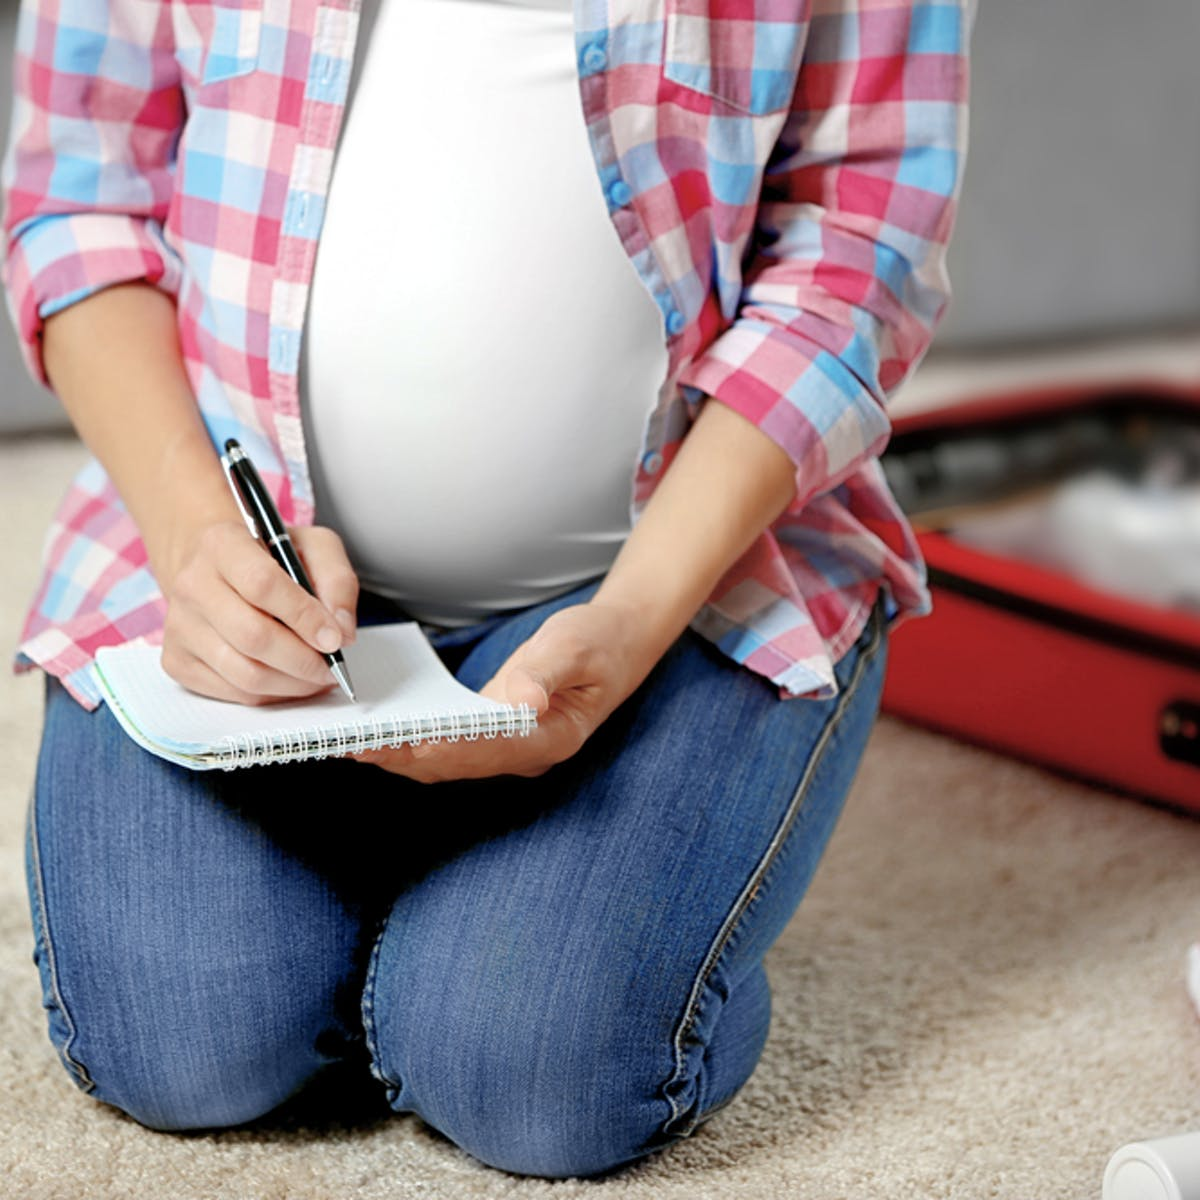 Health Check: is it safe to express milk before giving birth?